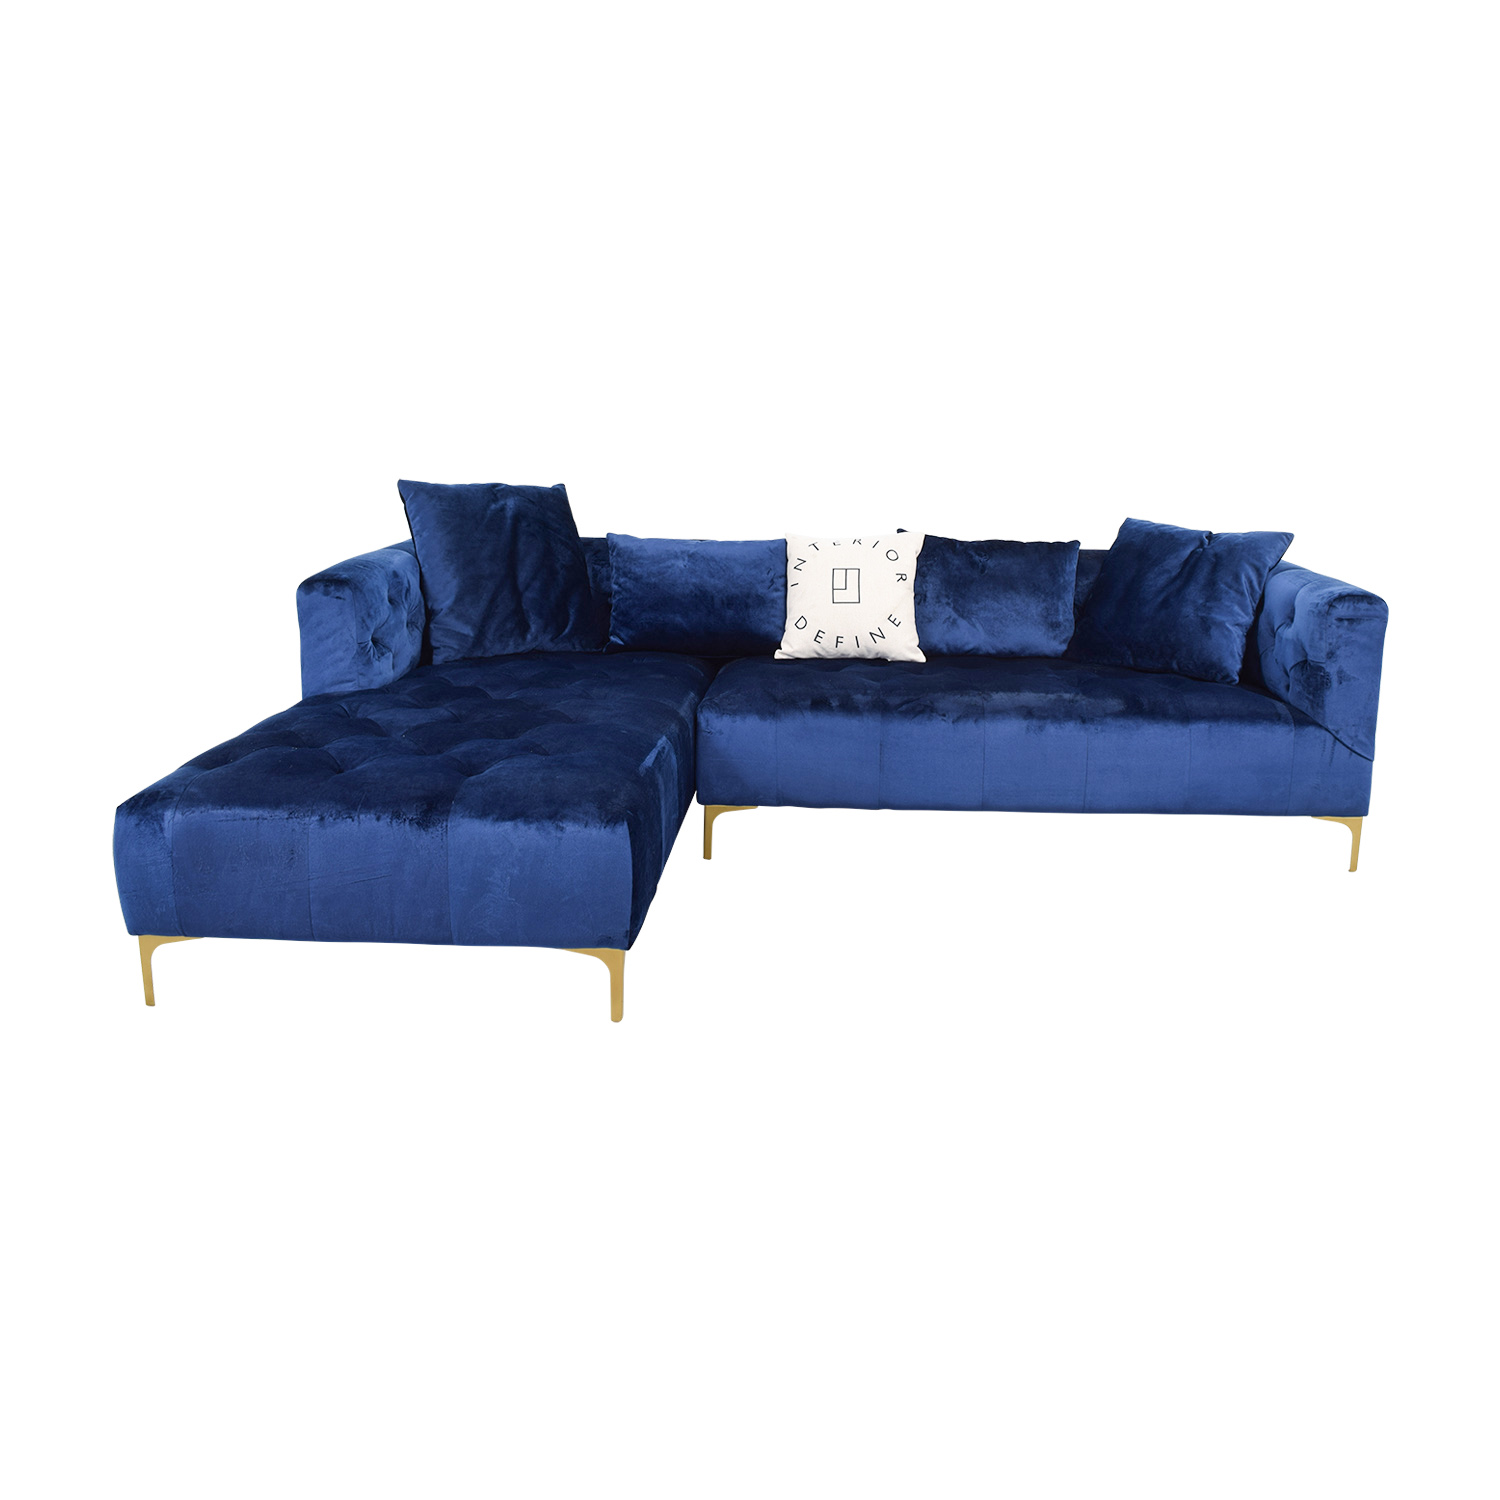 Chesterfield Sectional Sofa 55 Off Ms Chesterfield Blue Tufted Left Chaise Sectional Sofas